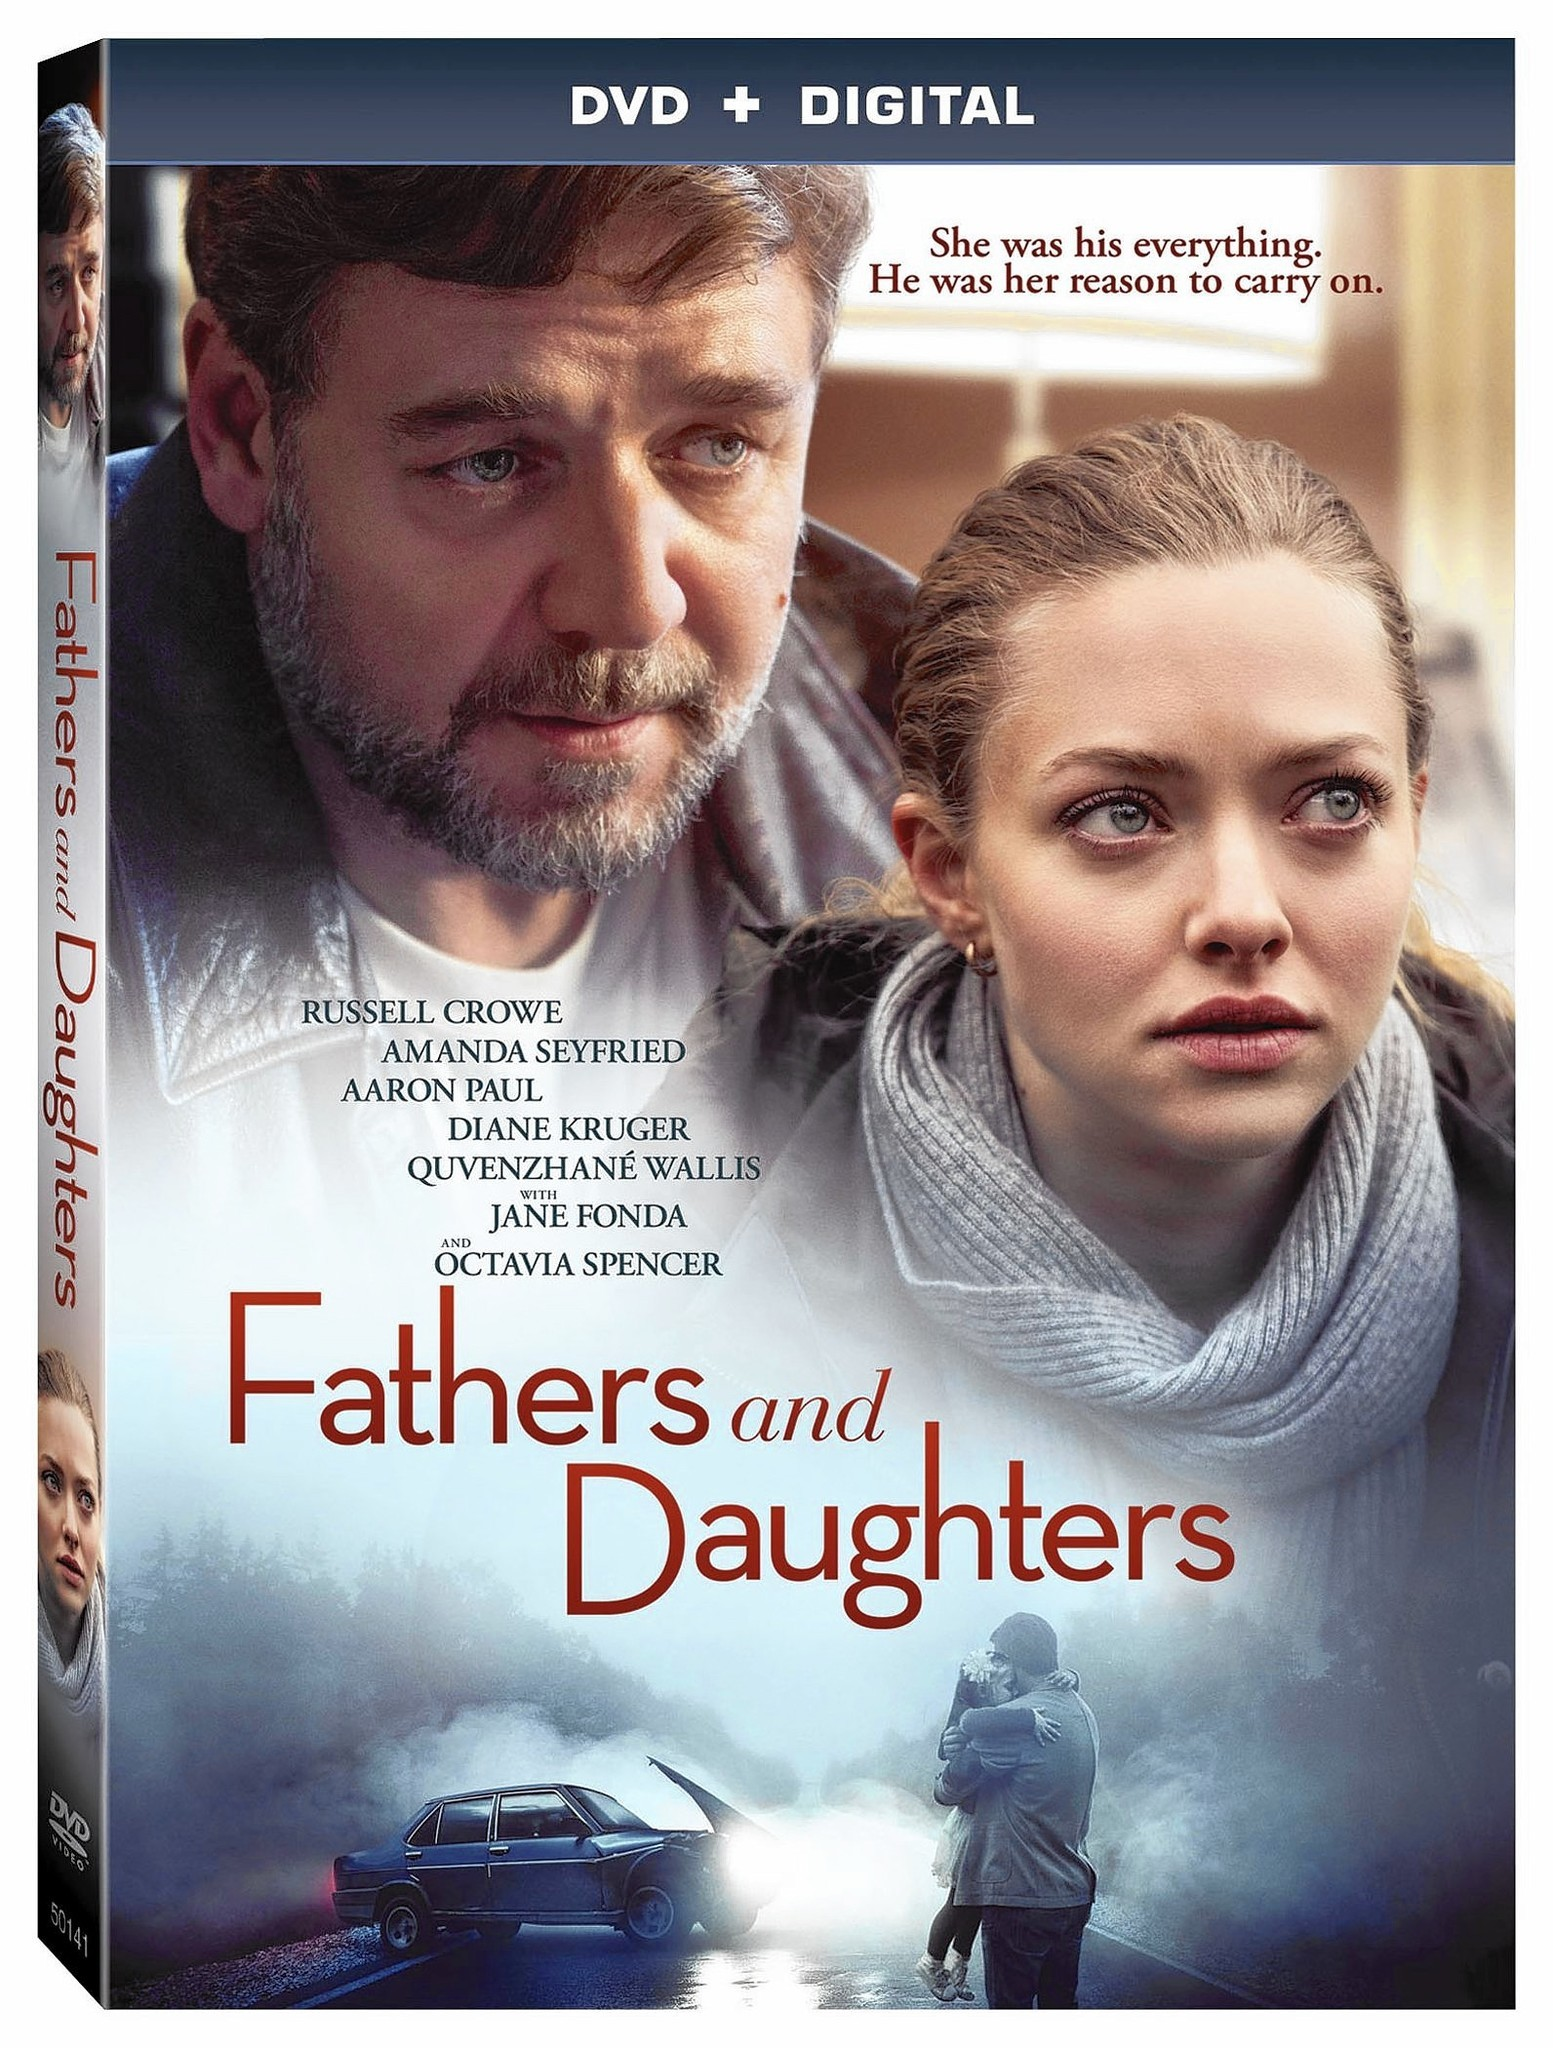 Amanda seyfried in fathers and daughters 2015 - 2 5